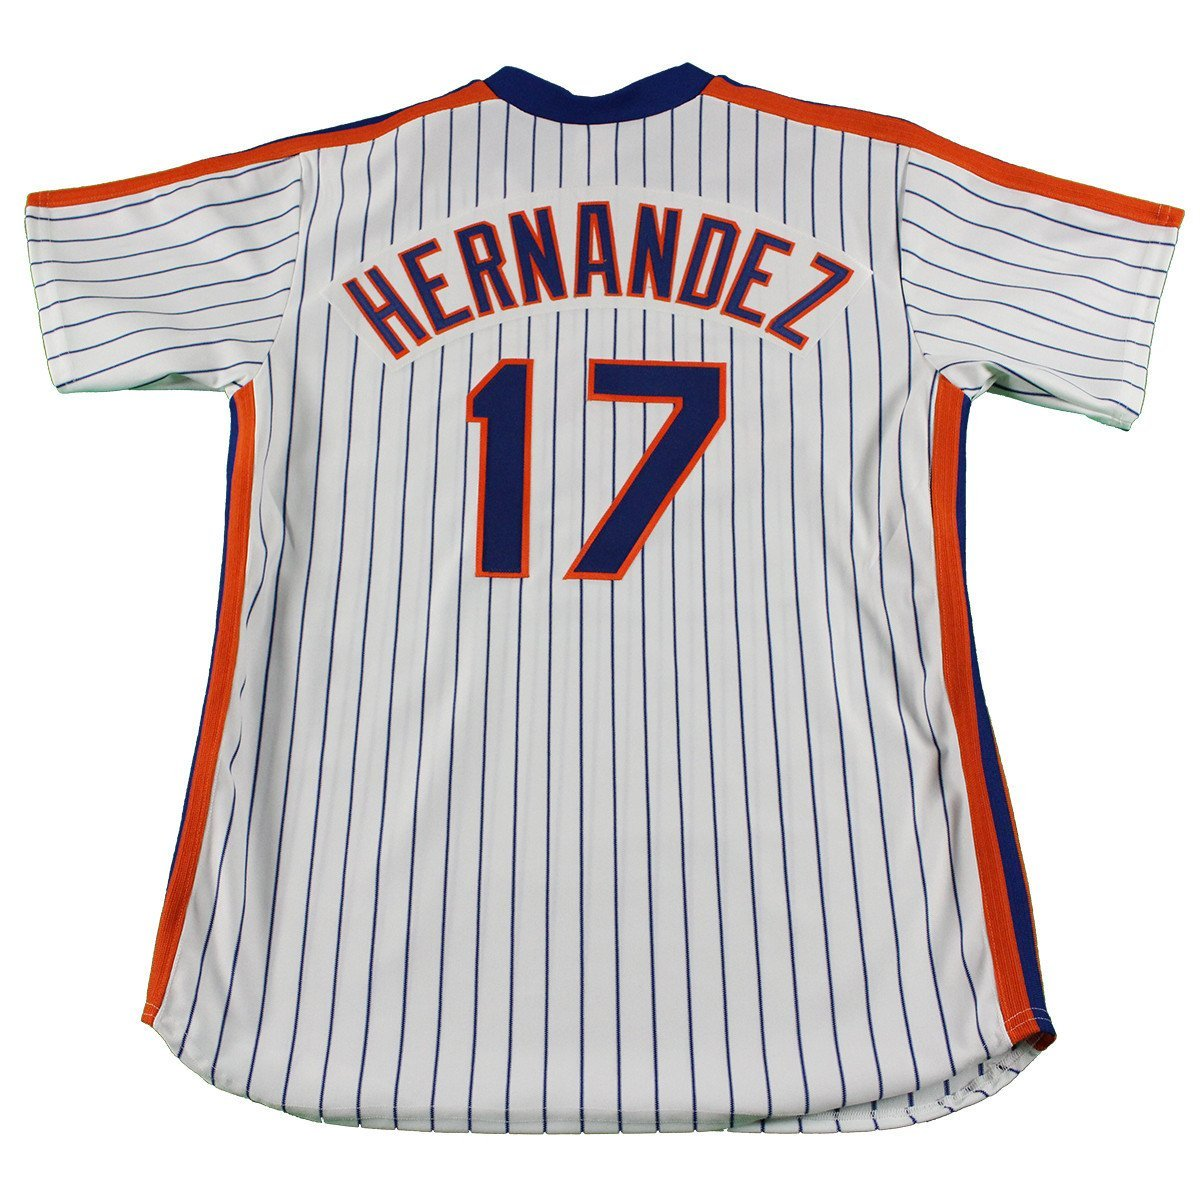 competitive price f1613 16f30 Keith Hernandez New York Mets Authentic Jersey Uns at ...